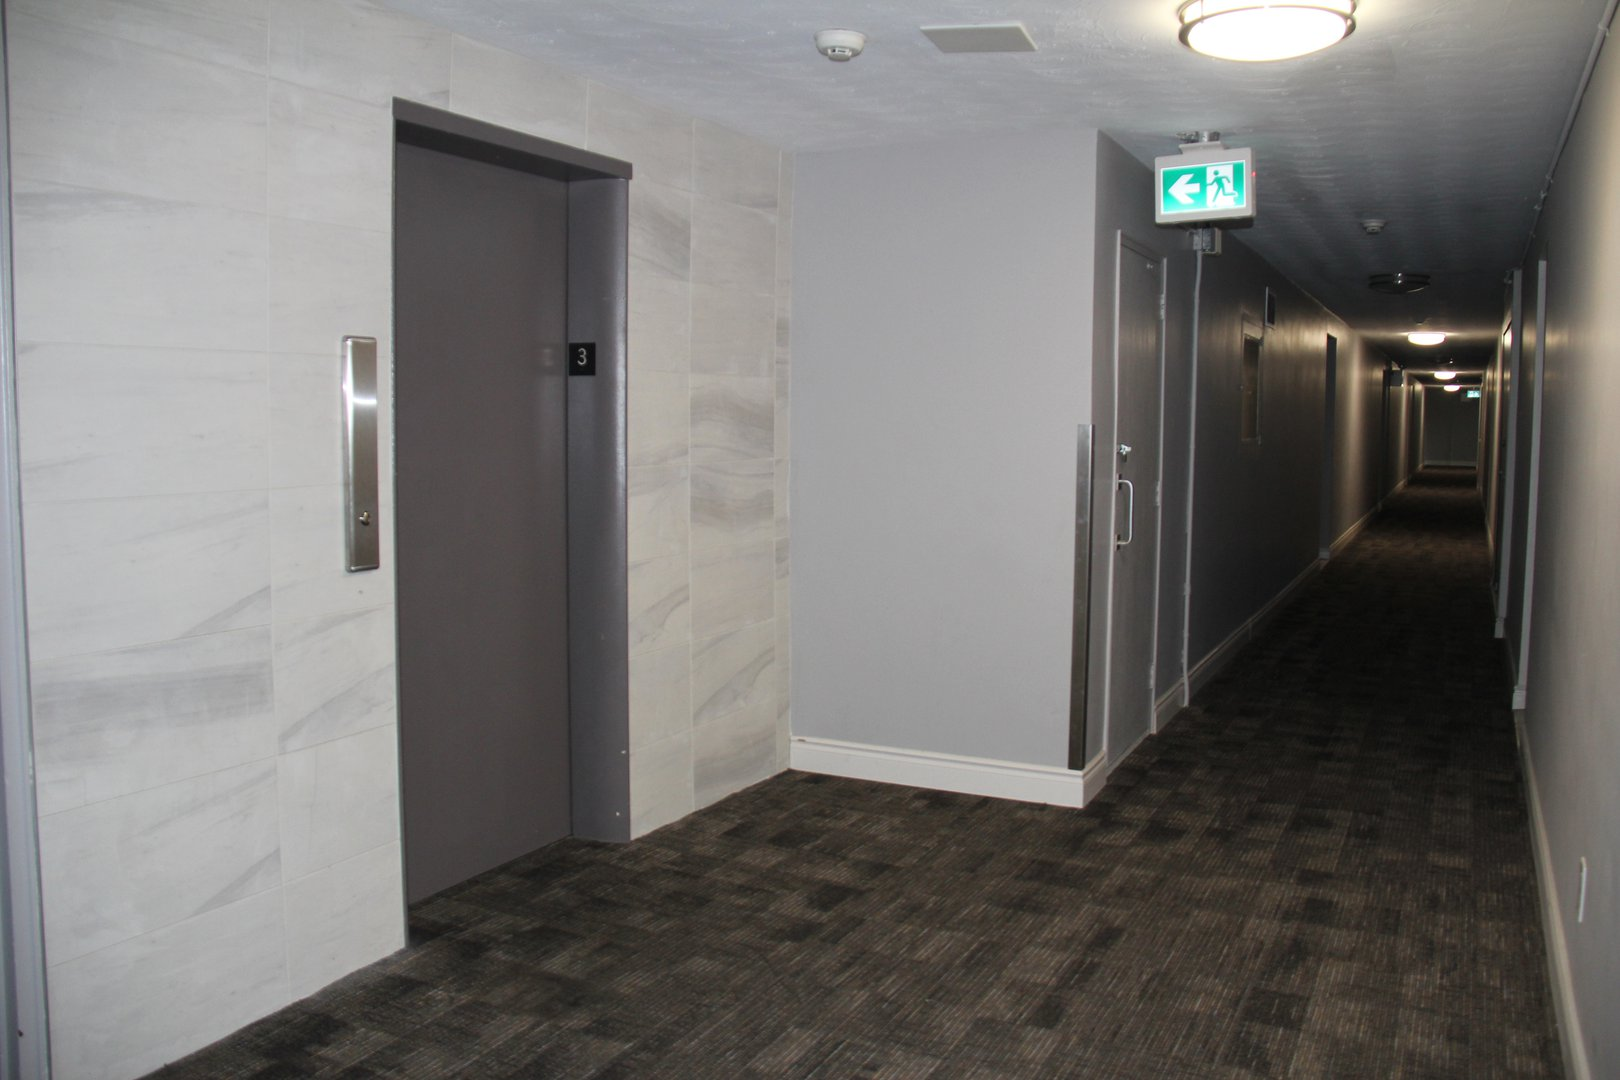 Apartment for rent at 141 Main St S, Brampton, ON. This is the corridor with carpet.